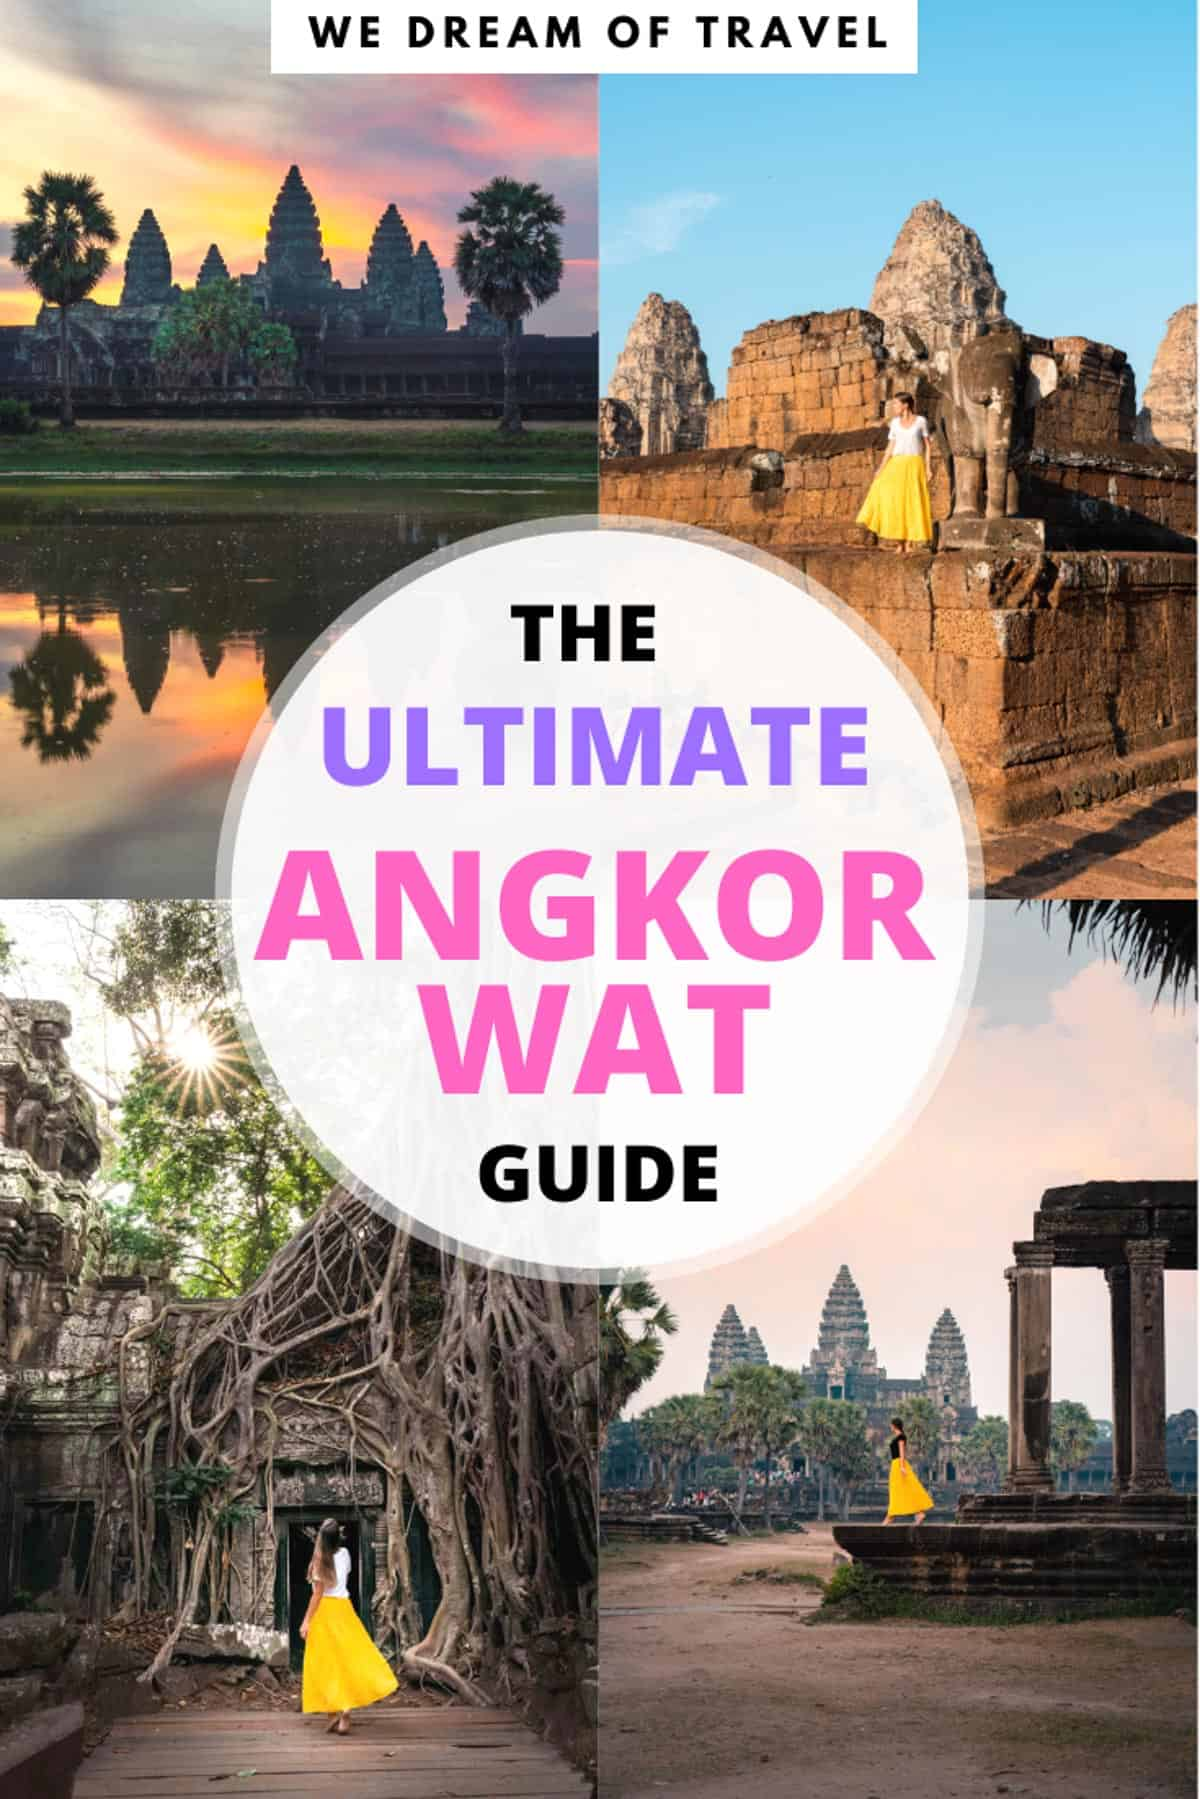 This essential guide to Angkor Wat, Cambodia, tells you EVERYTHING you need to know to plan the perfect trip to this UNESCO heritage site. With over 1000 temples in the Angkor Wat archaeological complex, it can be hard trying to figure out your perfect trip. Full of Angkor Wat photography to help inspire your trip as well as useful information about how to get to Angkor Wat, how to buy tickets, where to stay and which temples to visit. #angkorwat #siemreap #cambodia #travelguide